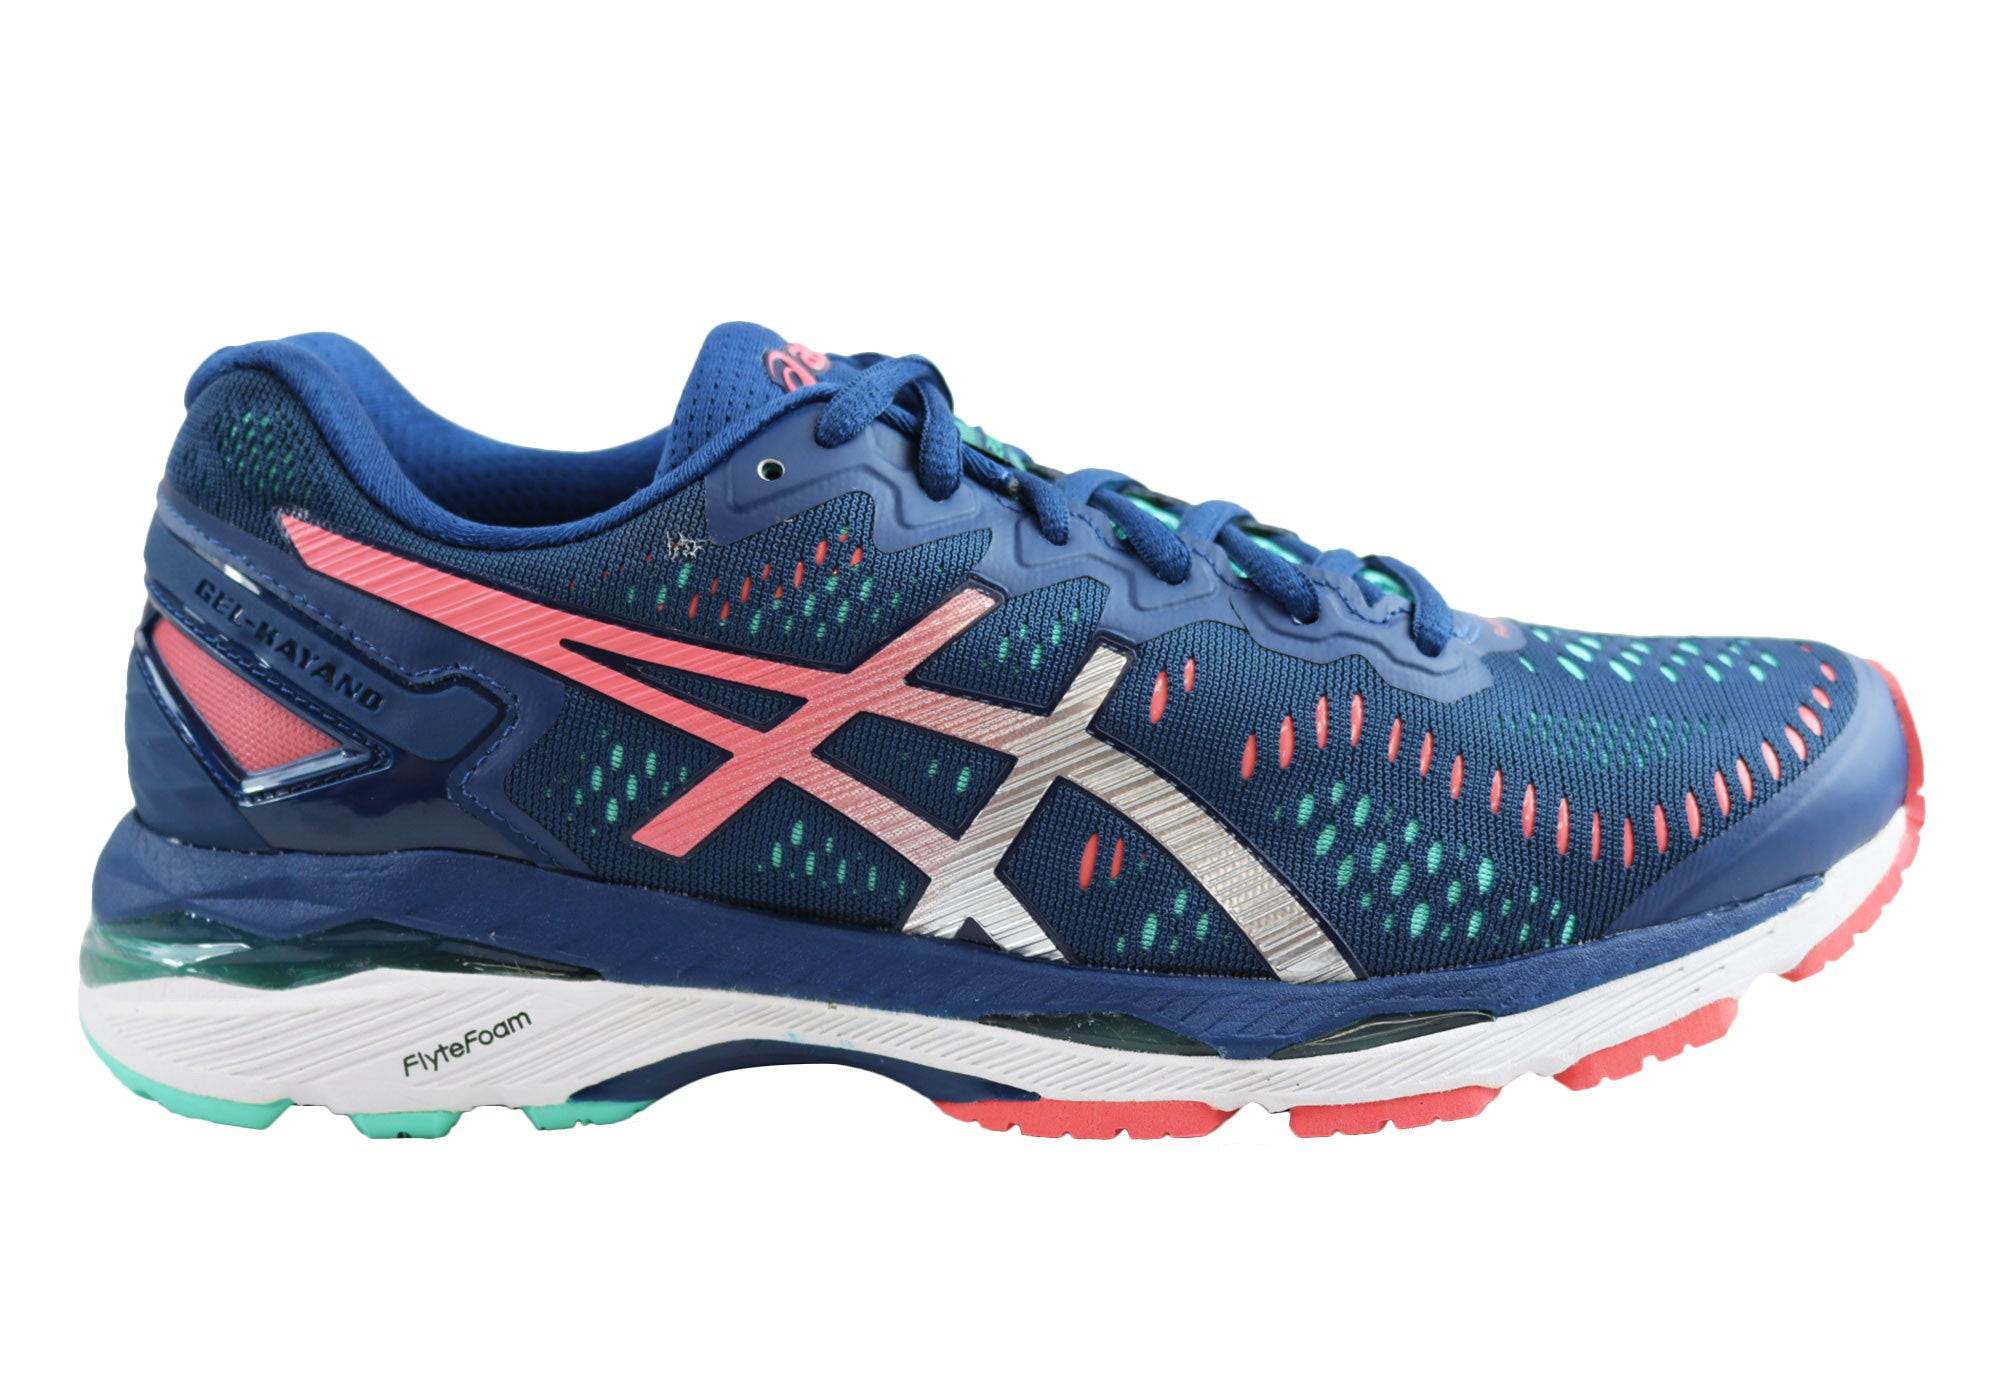 pretty nice b5671 0d961 Details about NEW ASICS GEL KAYANO 23 WOMENS PREMIUM CUSHIONED RUNNING  SPORT SHOES